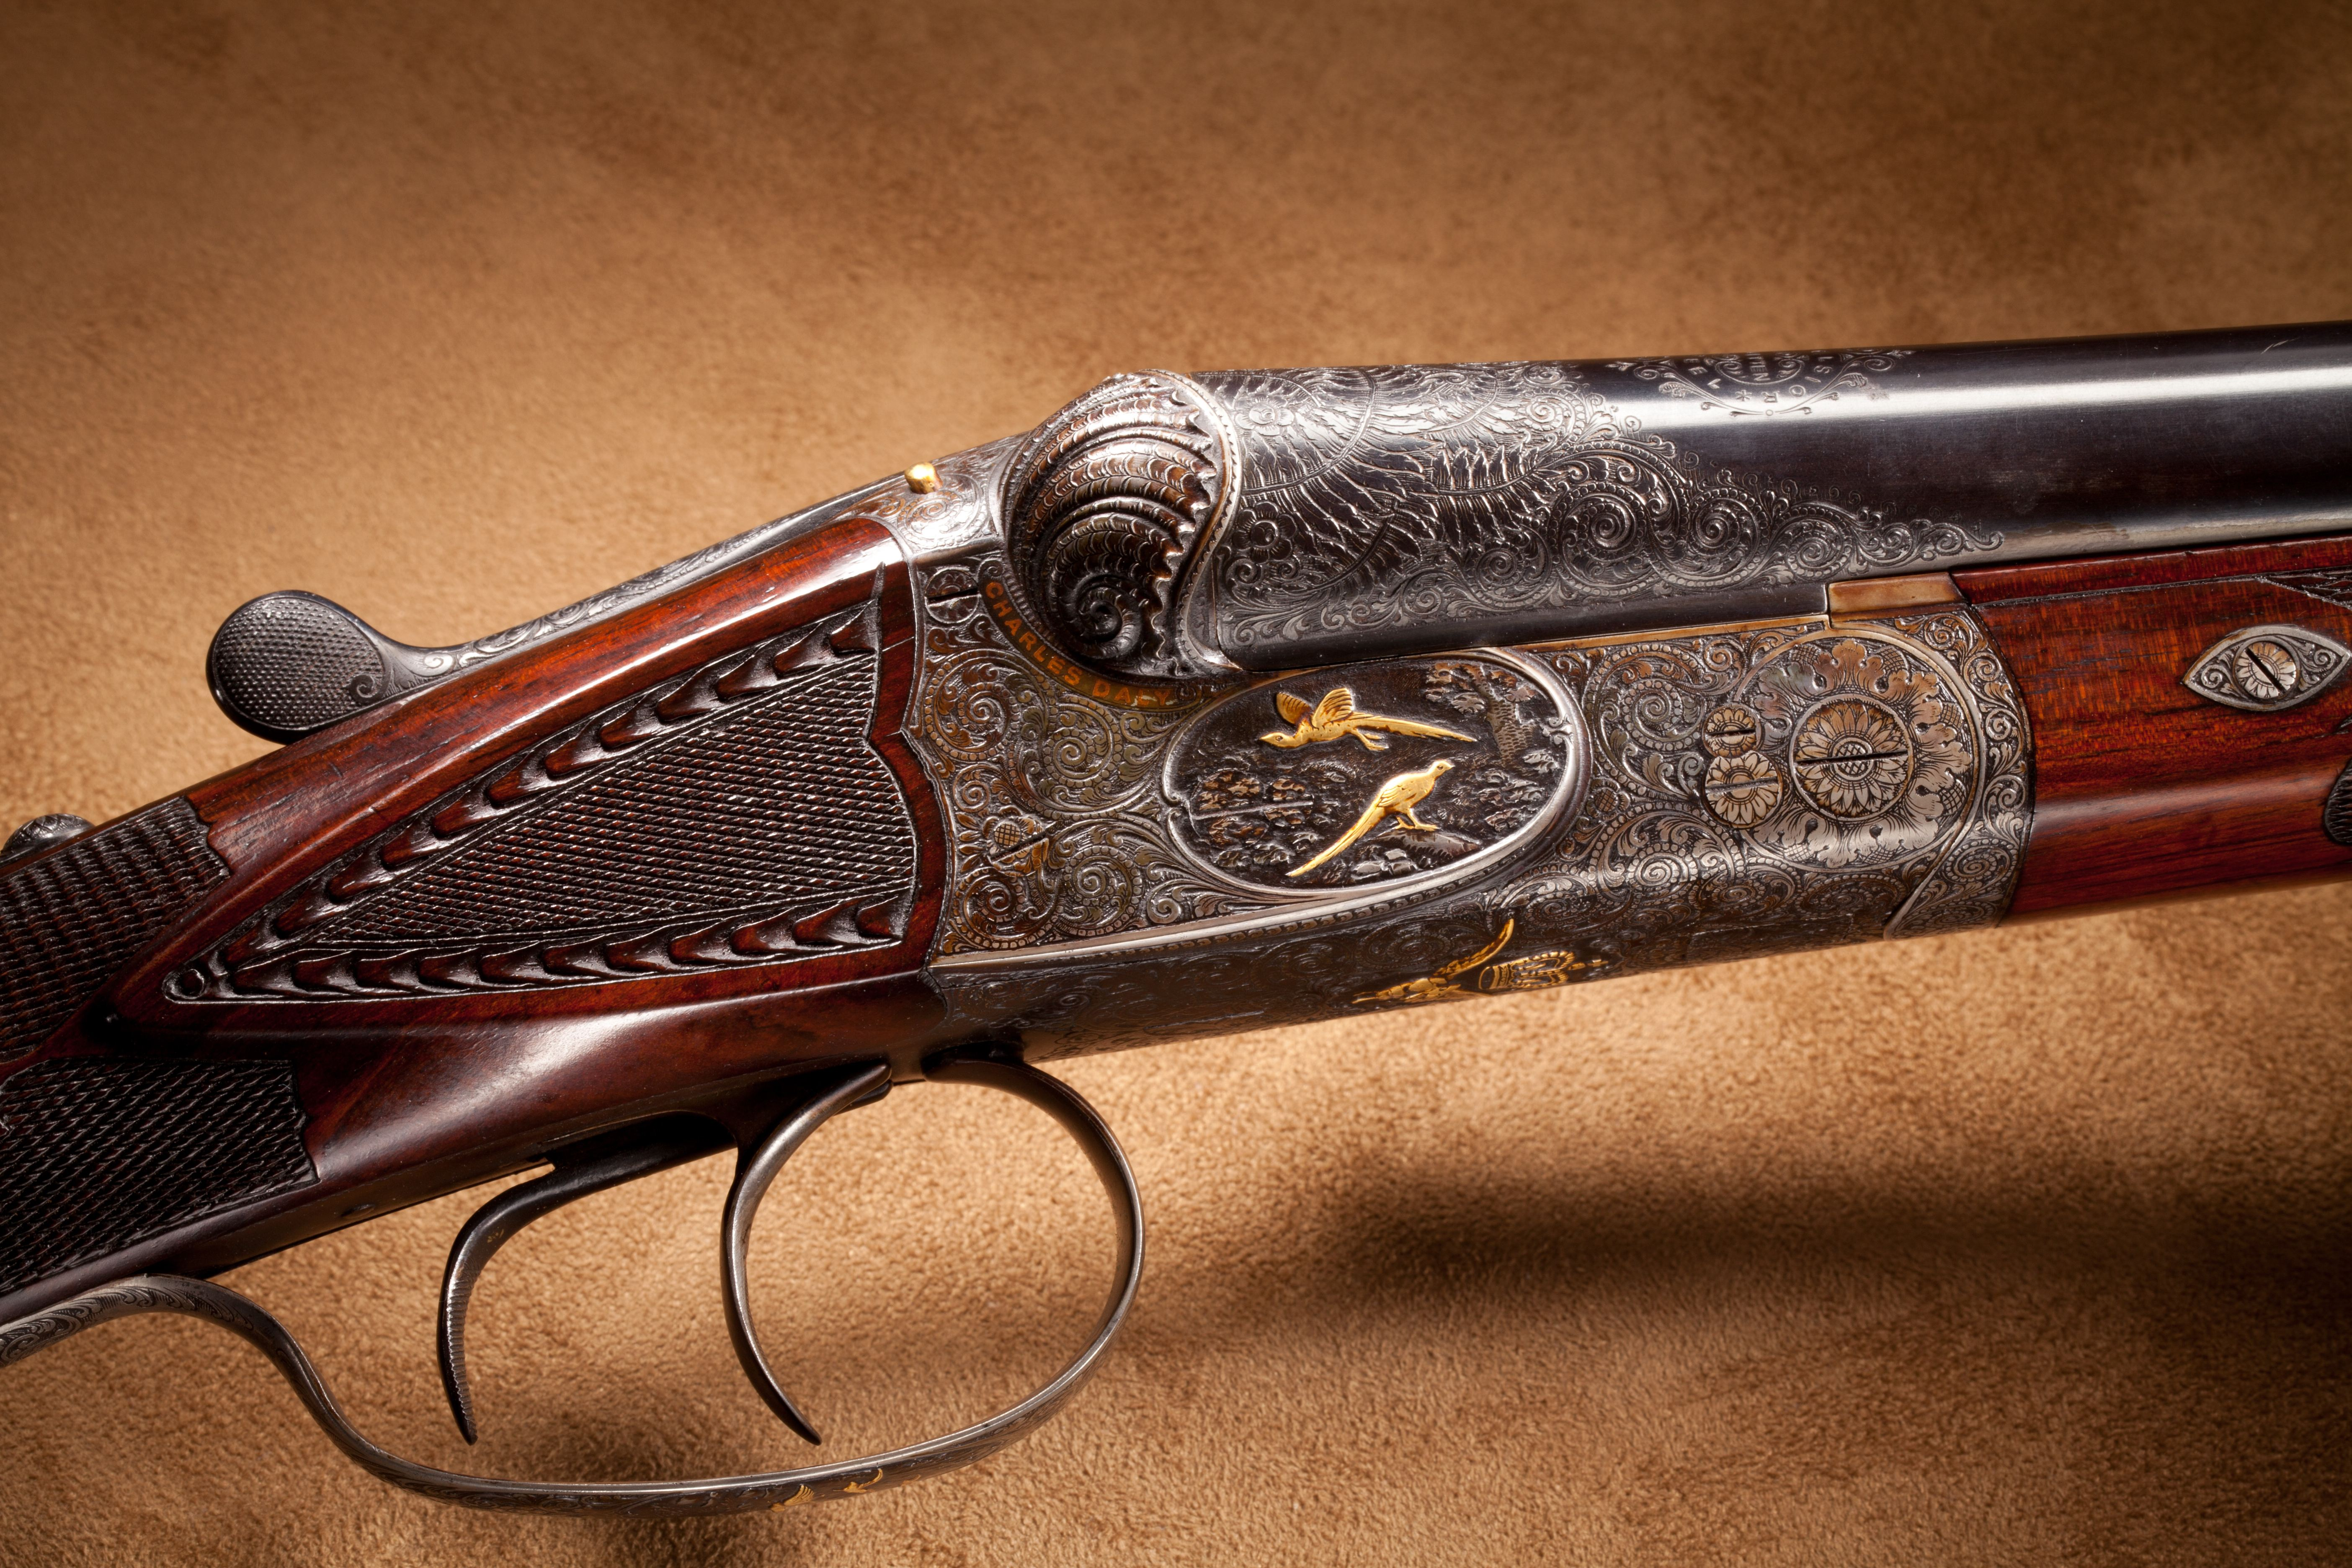 Charles Daly Regent Diamond Grade Side by Side Shotgun - 16 ga.